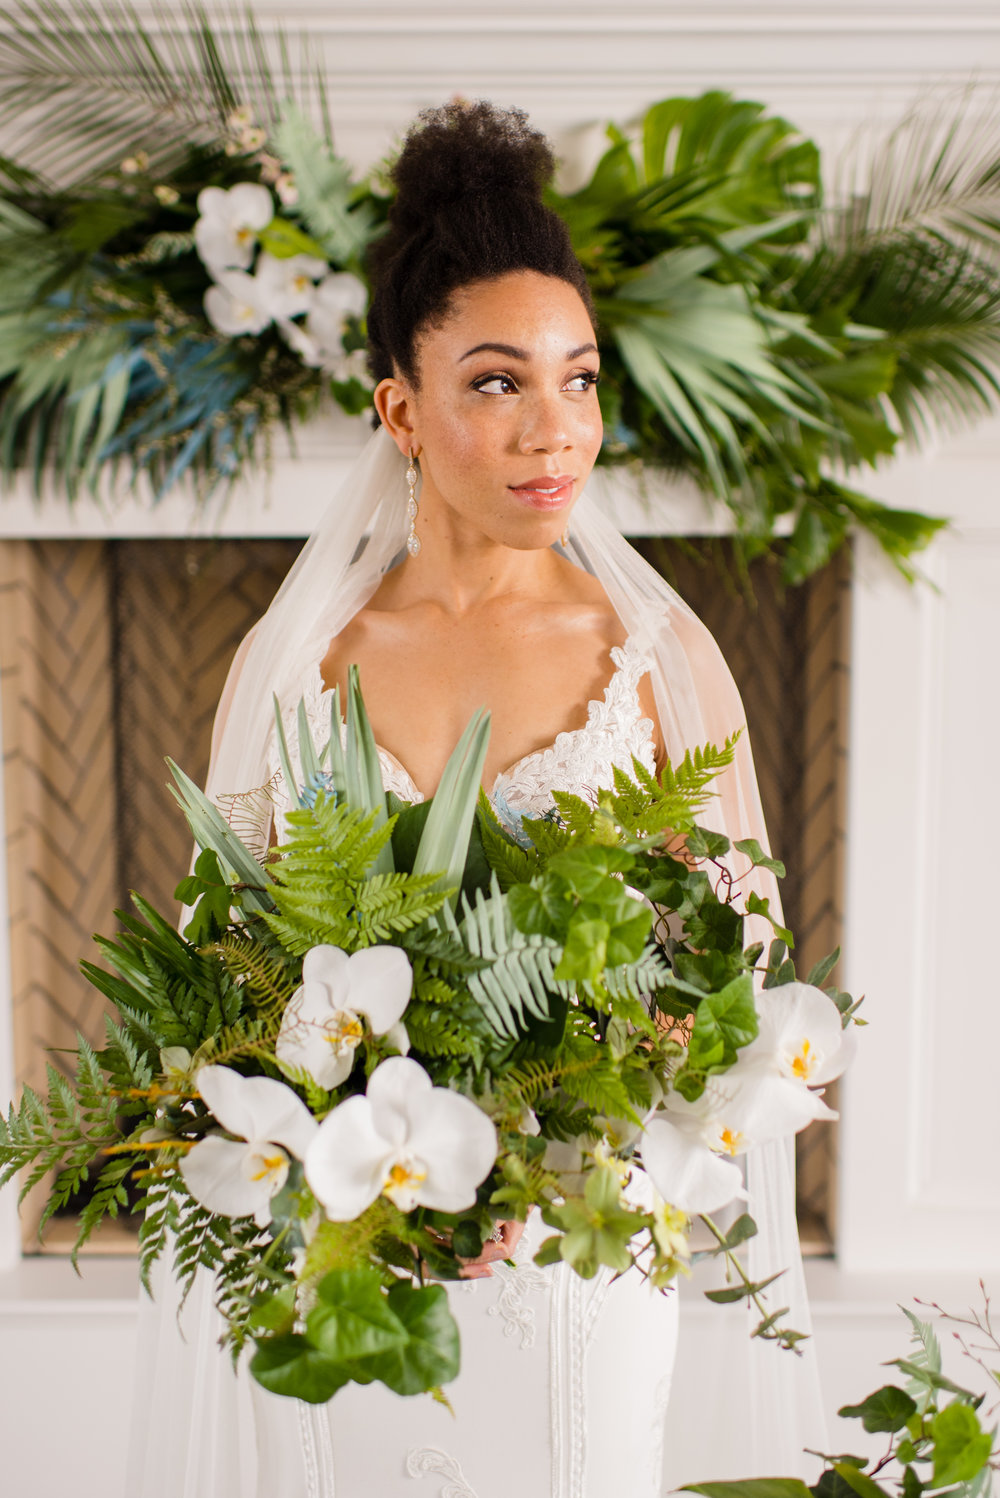 Cannot even deal with all this gorgeous greenery. And of course Dominique! Heart eyes for days.